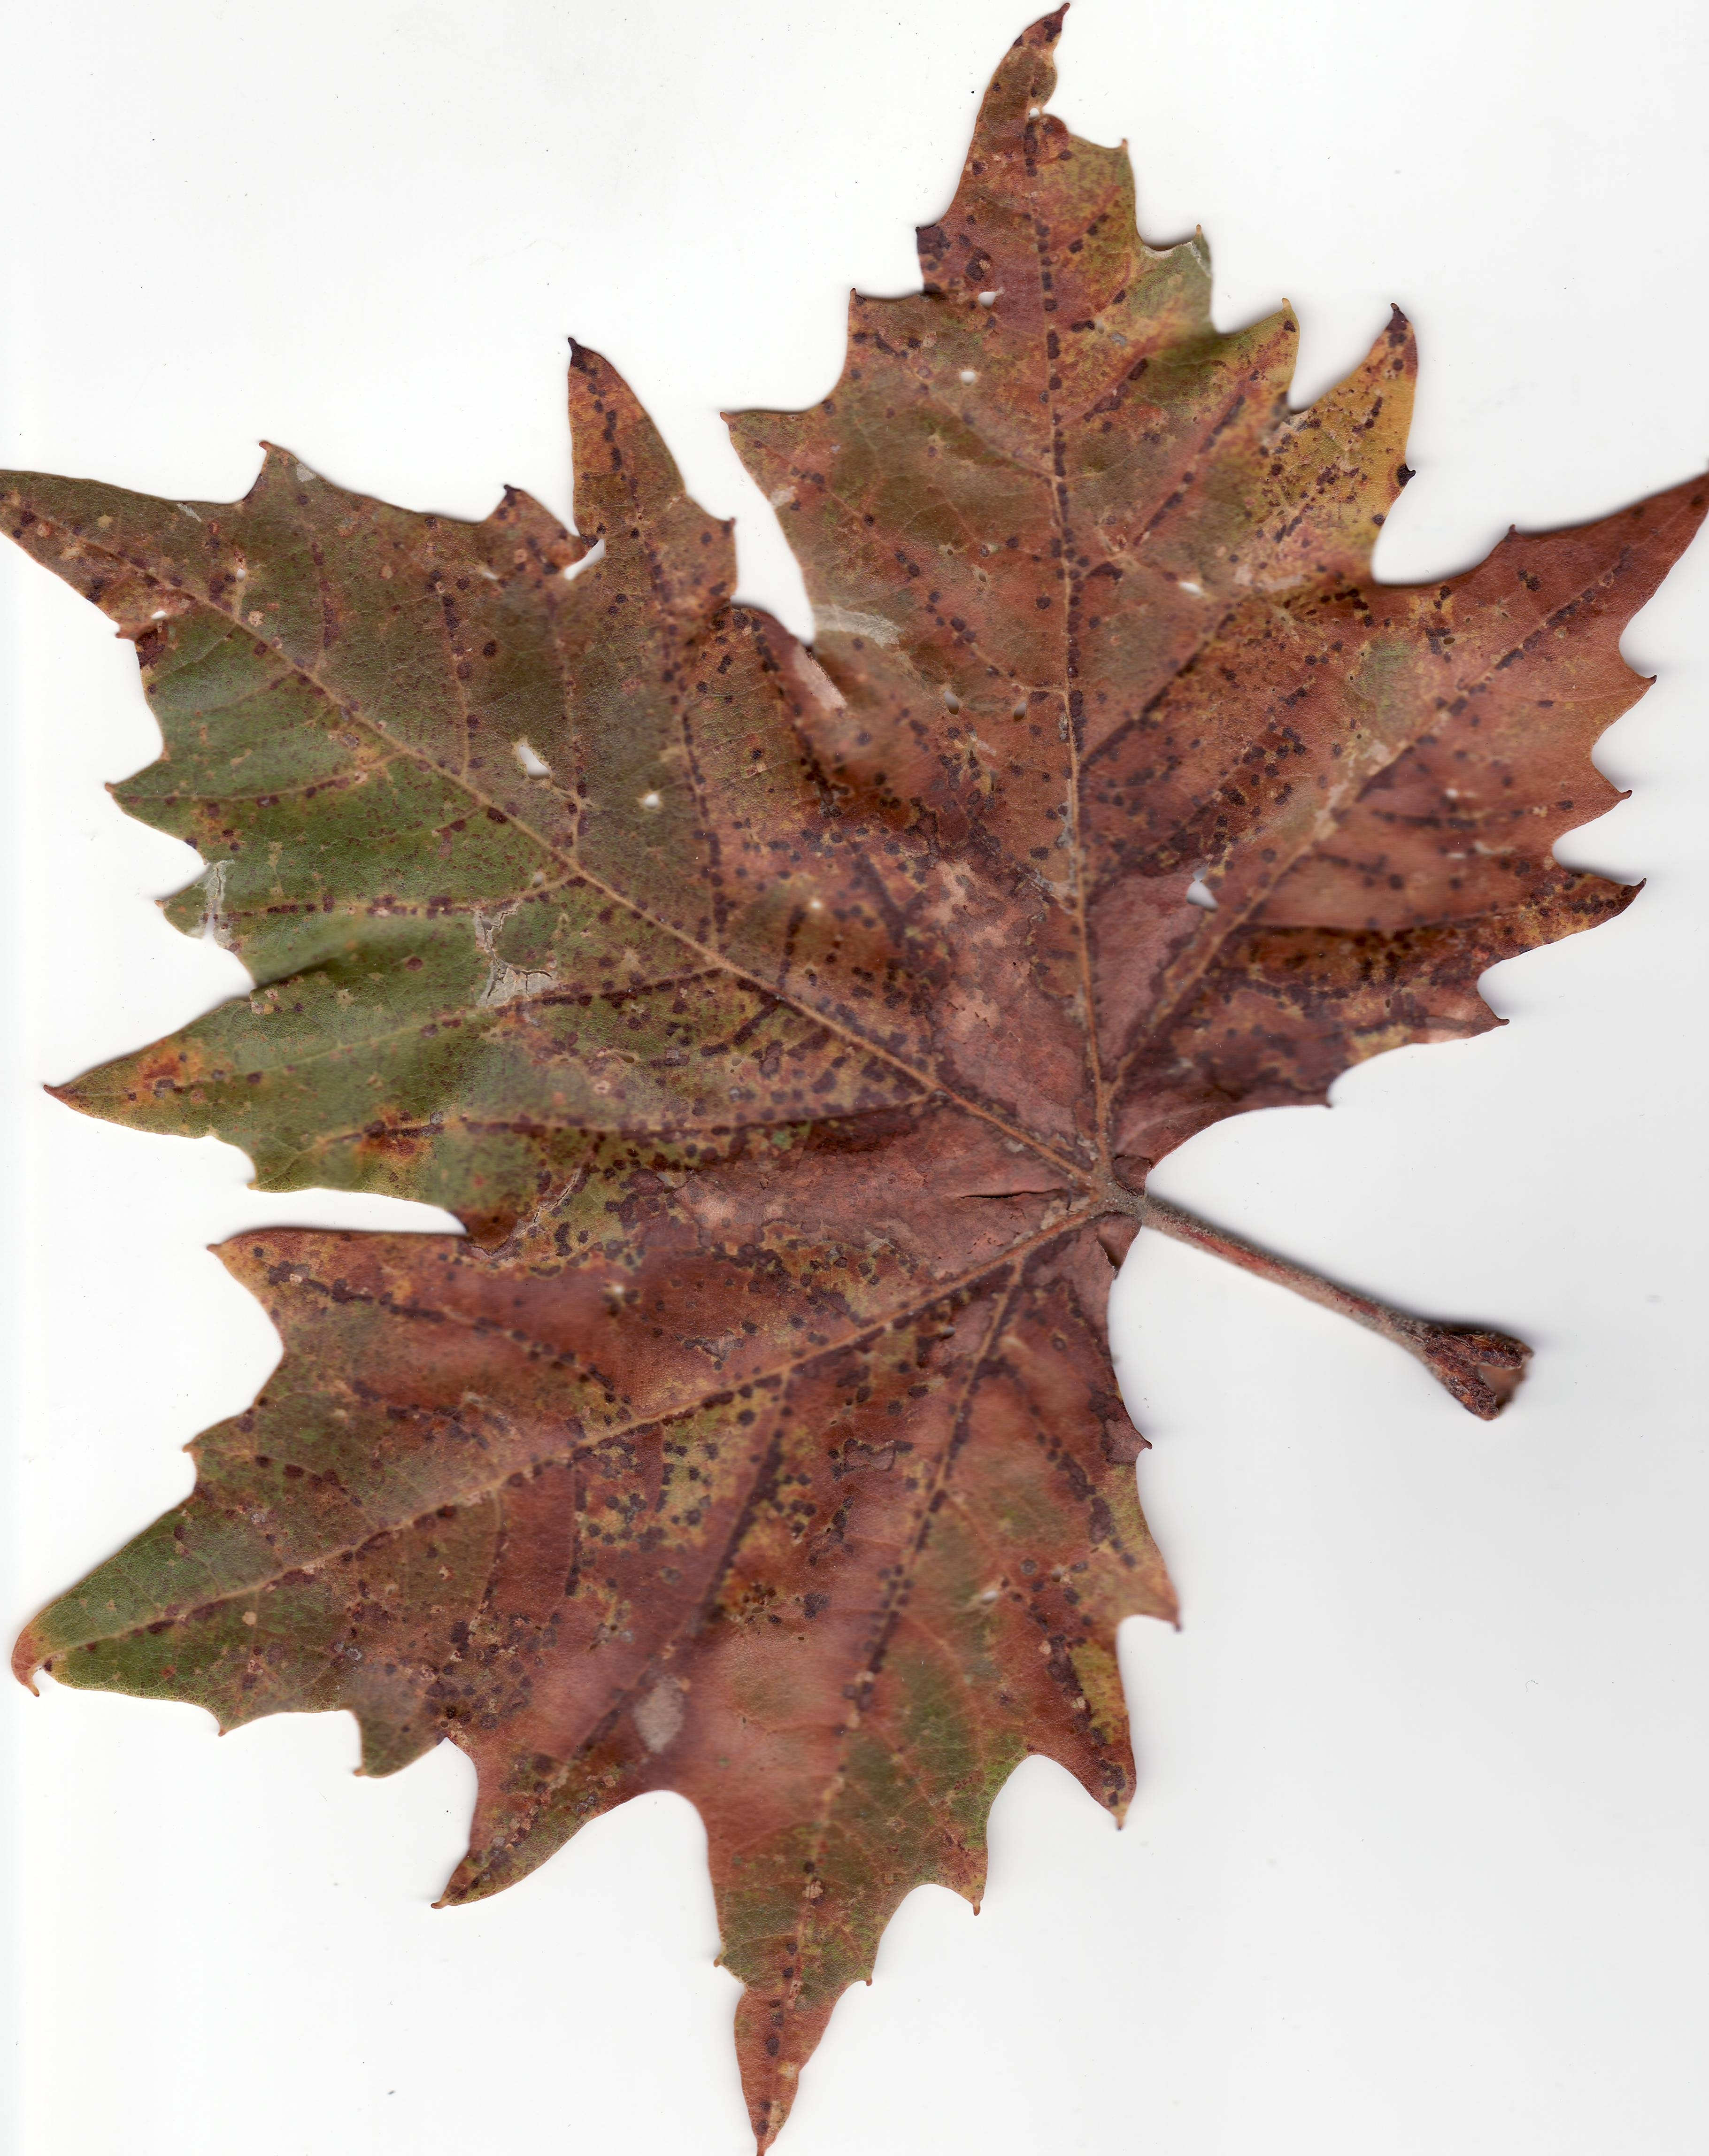 fall from plane london with File Autumn American Sycamore Leaf on Deciduous Nursery as well Racing Driver David Coulthard Makes Speedy Exit Leaves The Box Nightclub Mystery Woman further 10 Best Things To Do In Madrid A Loved Up Inside Guide likewise Racing Driver David Coulthard Makes Speedy Exit Leaves The Box Nightclub Mystery Woman additionally Family Vacation Europe Malta With Kids.